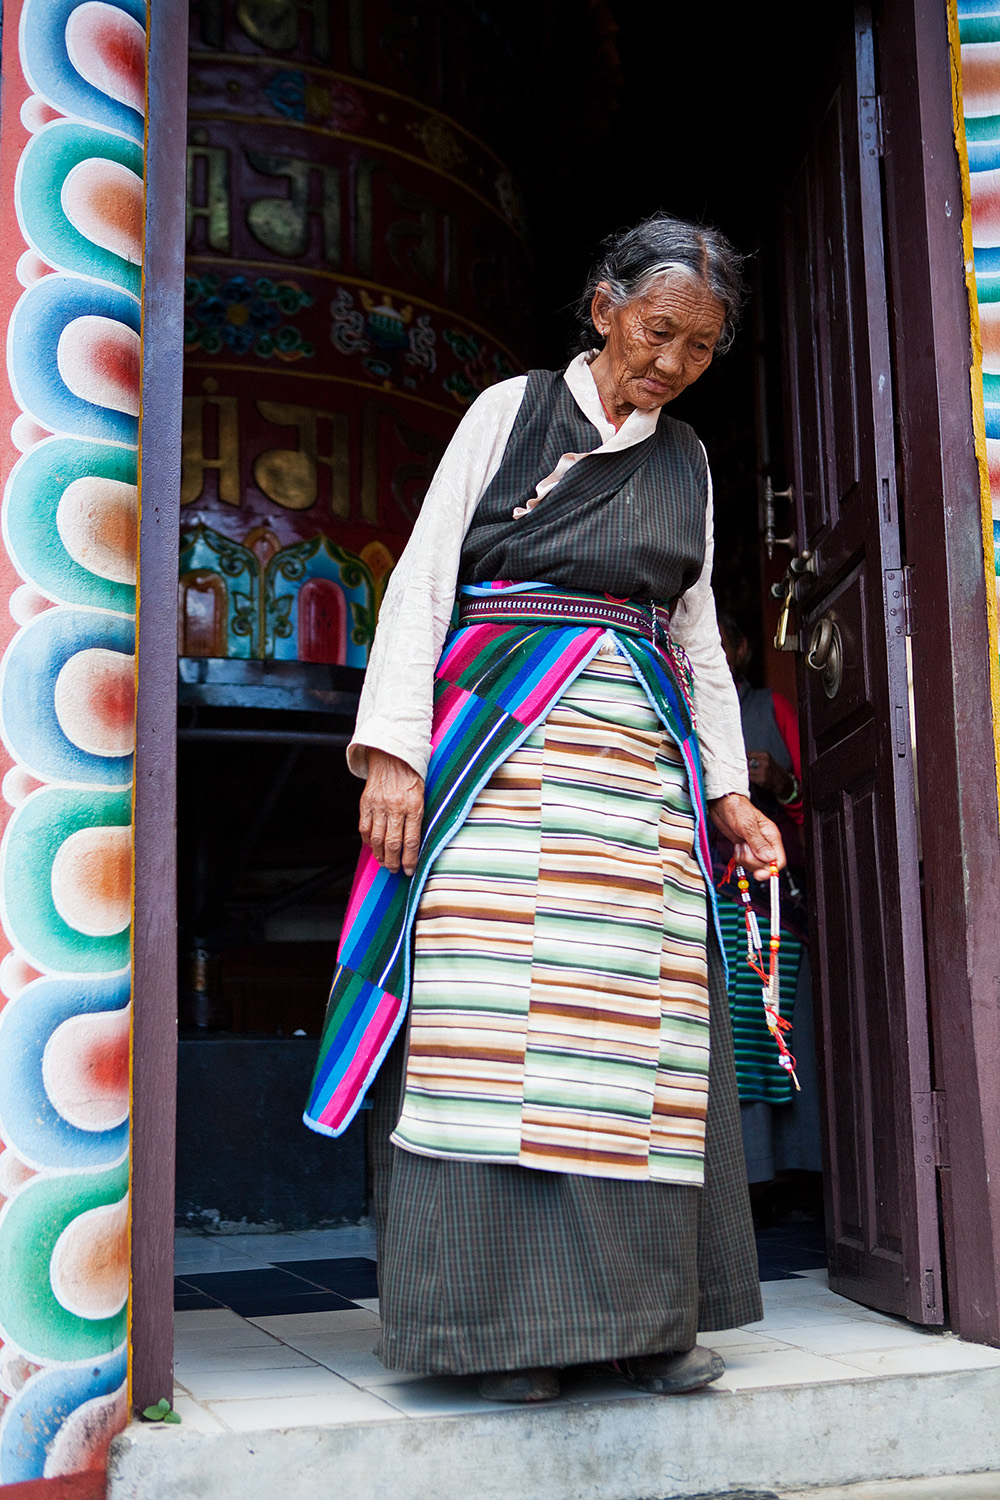 The village elders walk to the monastery to circle the room-sized prayer wheel.